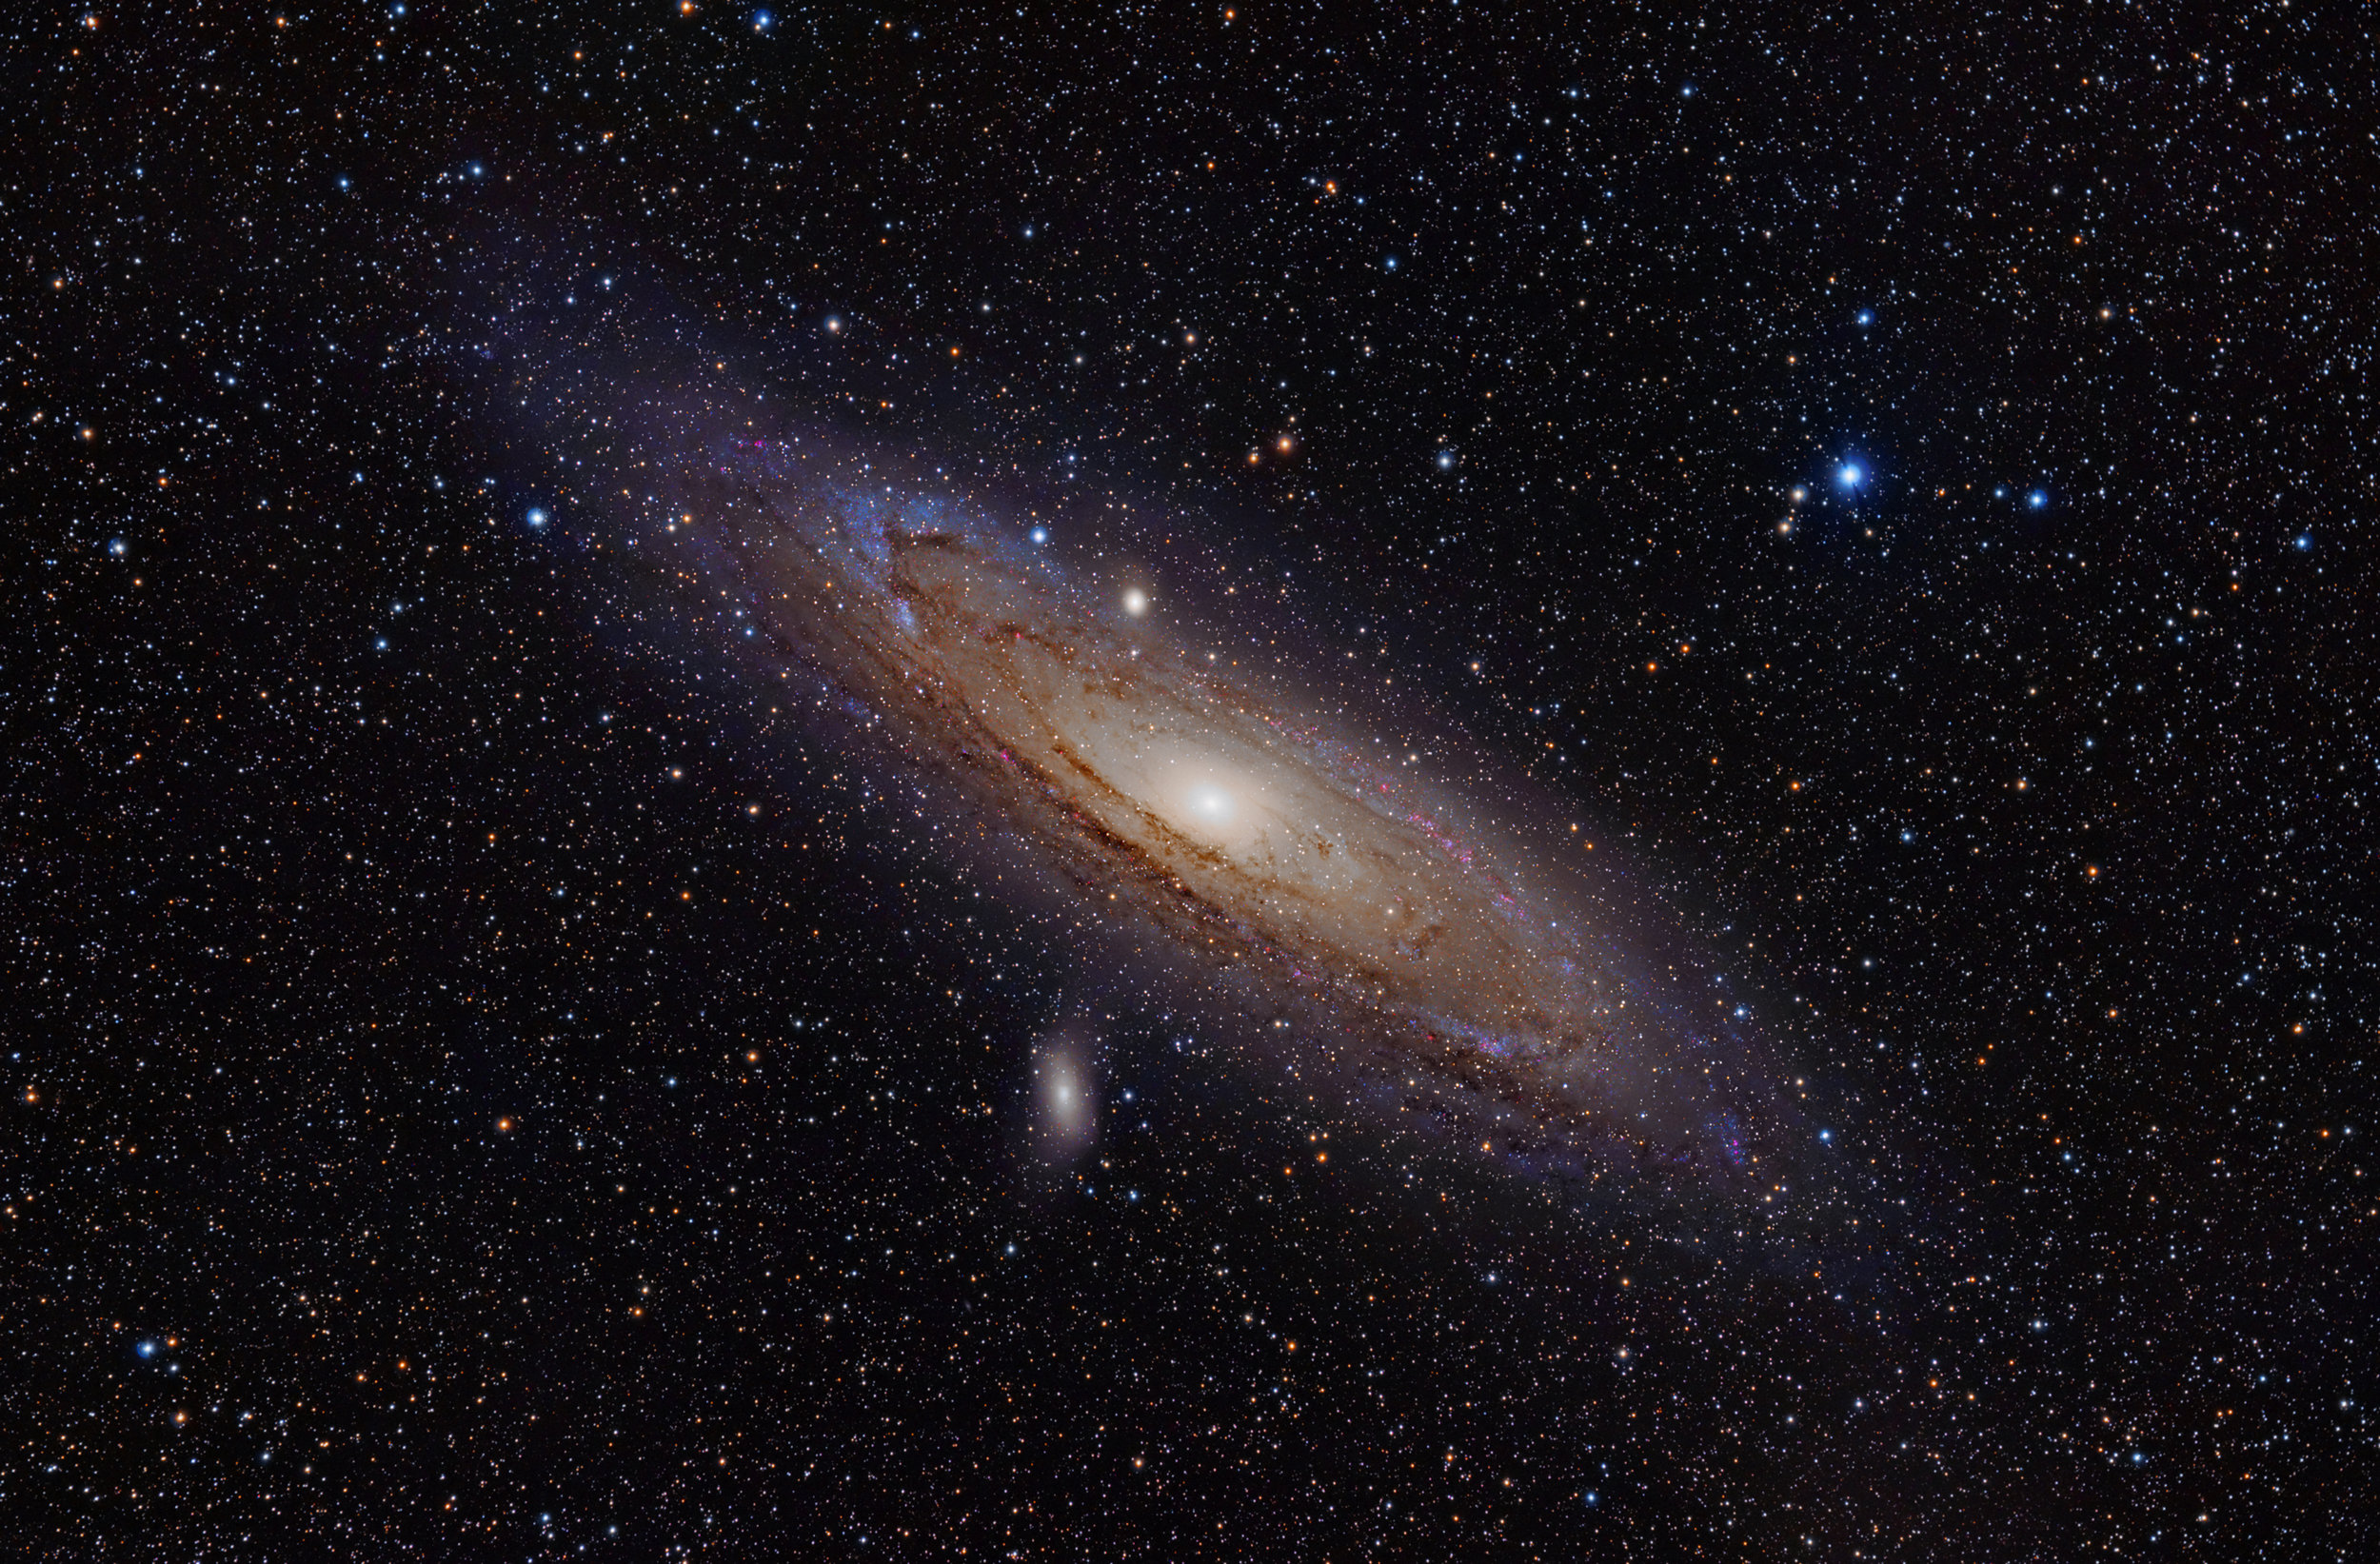 A scenario on the test asked students to gather and synthesize different kinds of information about an image of the Andromeda galaxy.